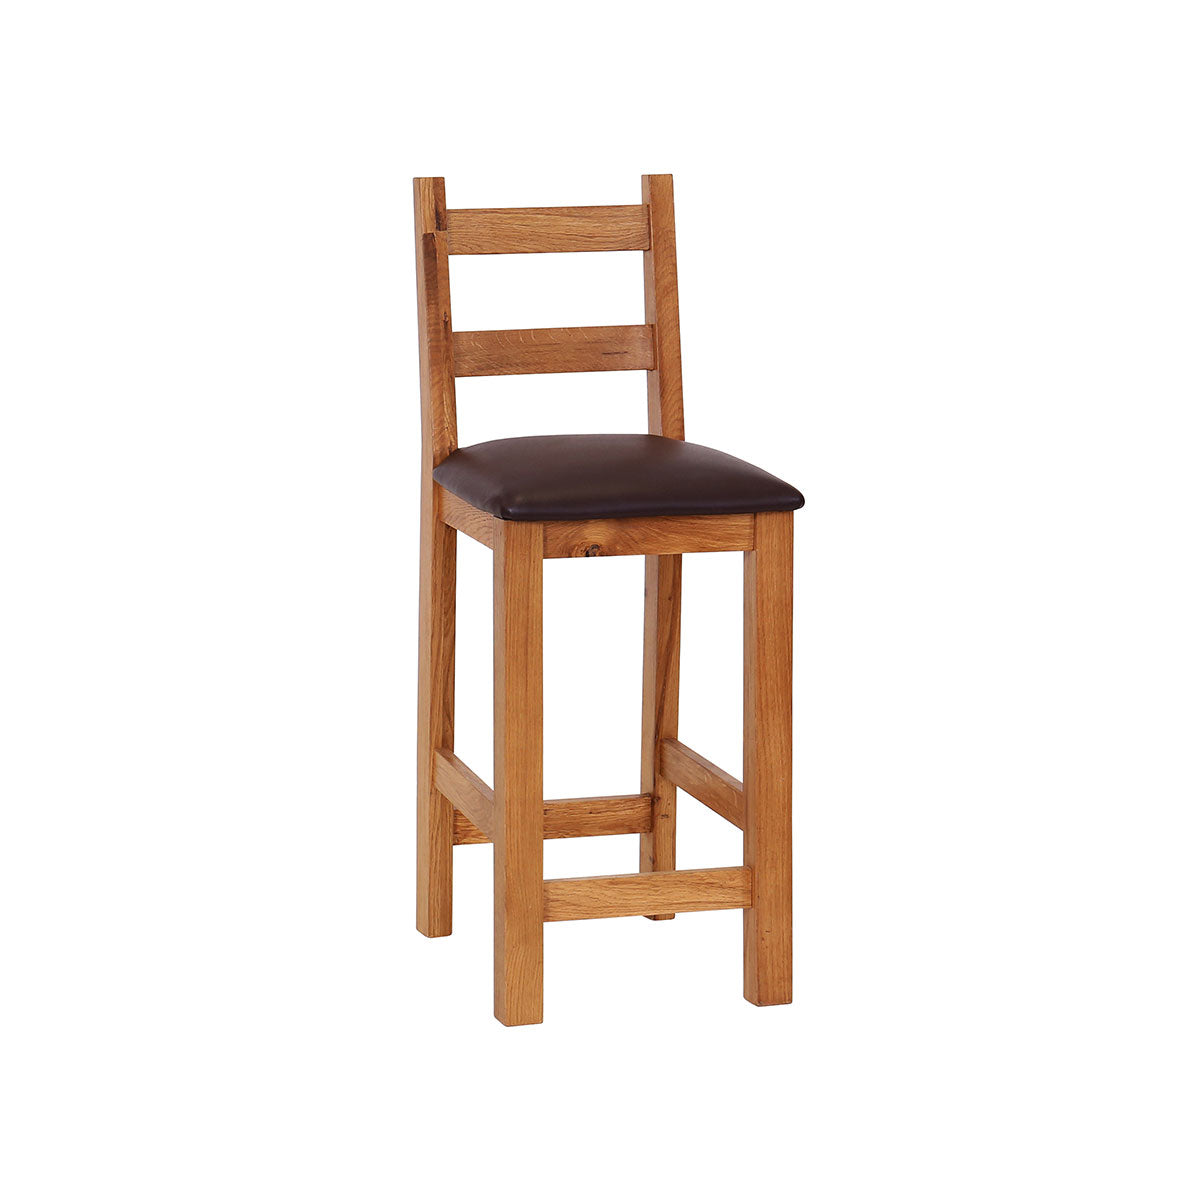 Pack of 2 - Oak Bar Stool with PU Seat